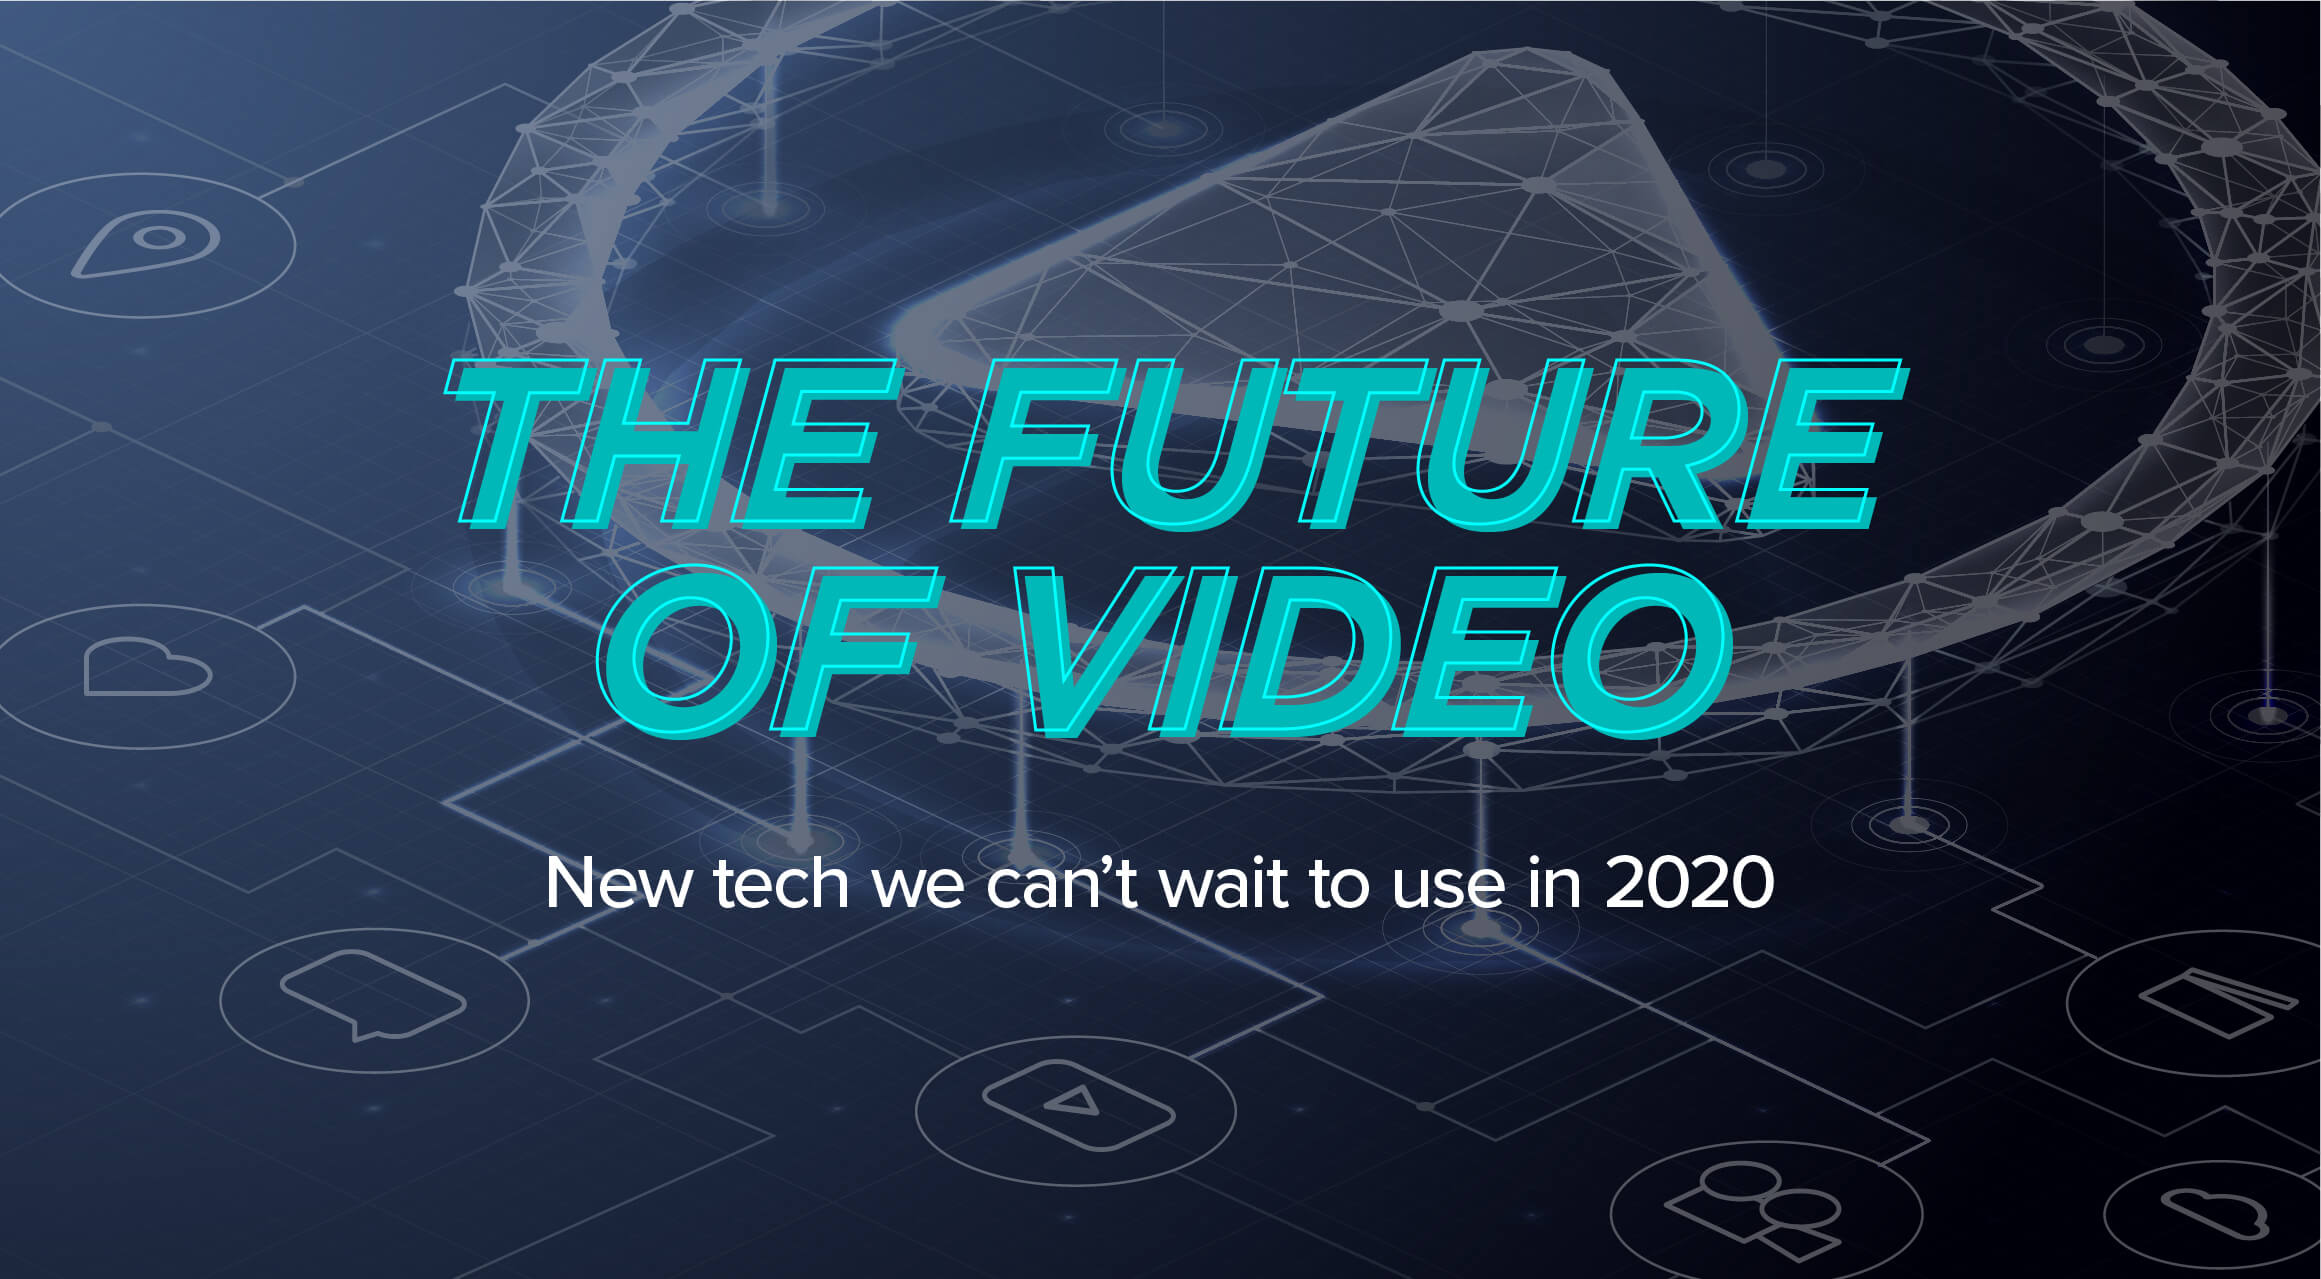 the future of video graphic